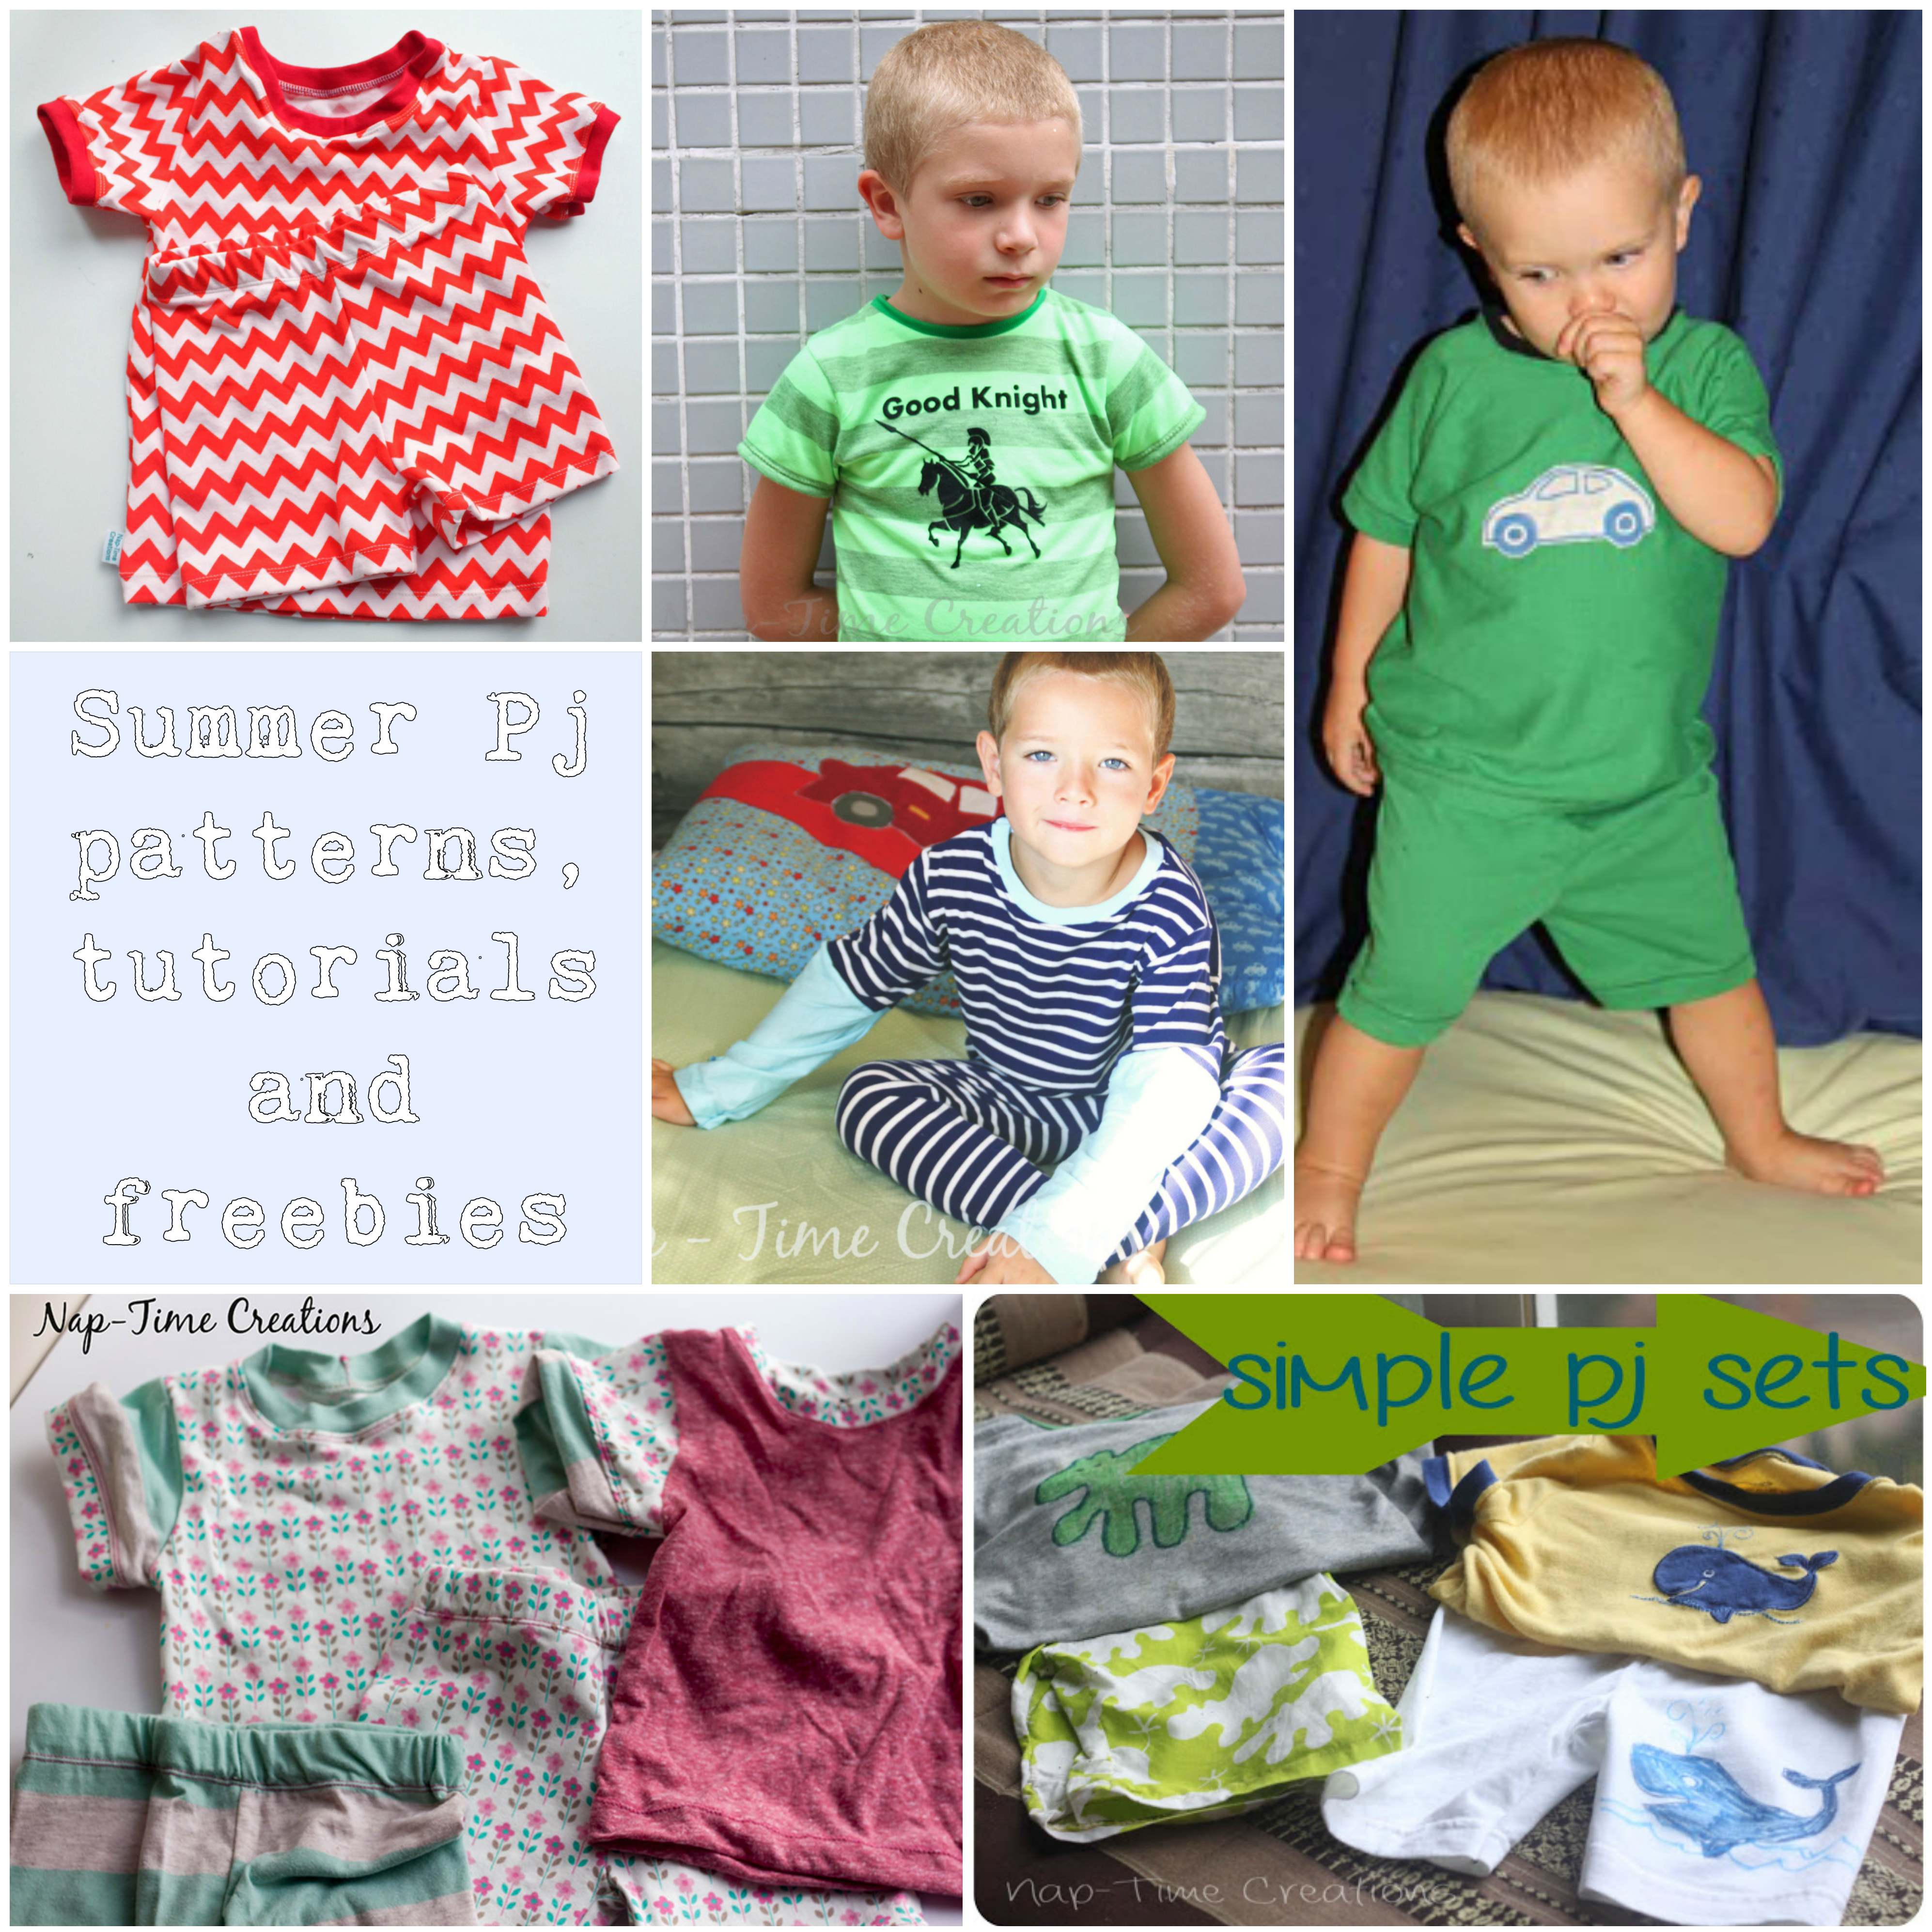 summer pj patterns tutorials and freebies for kids